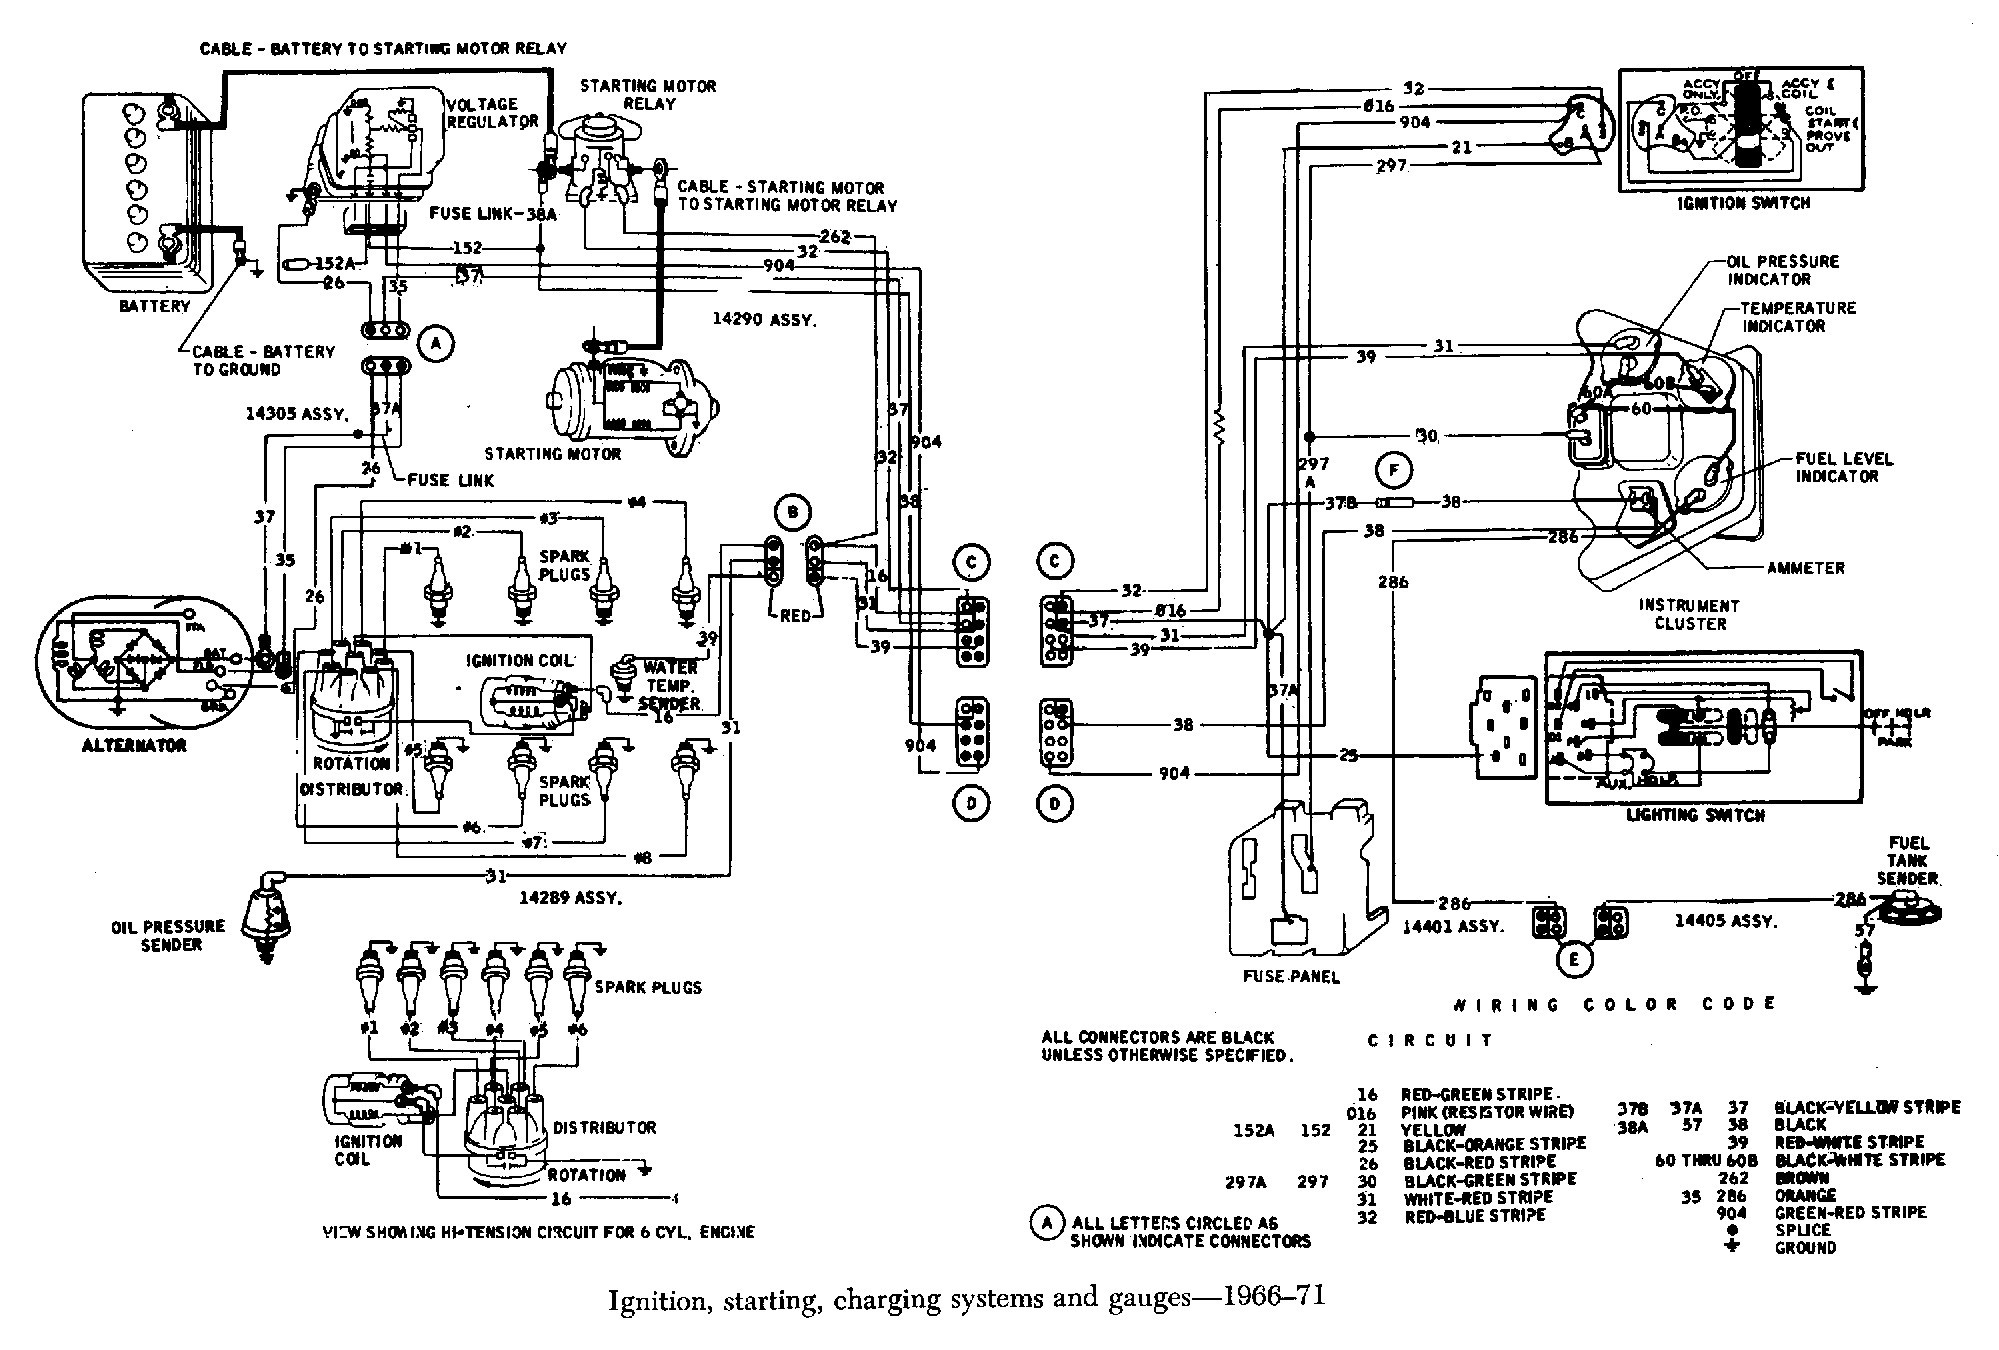 [DIAGRAM] Tic Toc Tach Wiring Diagram For A FULL Version